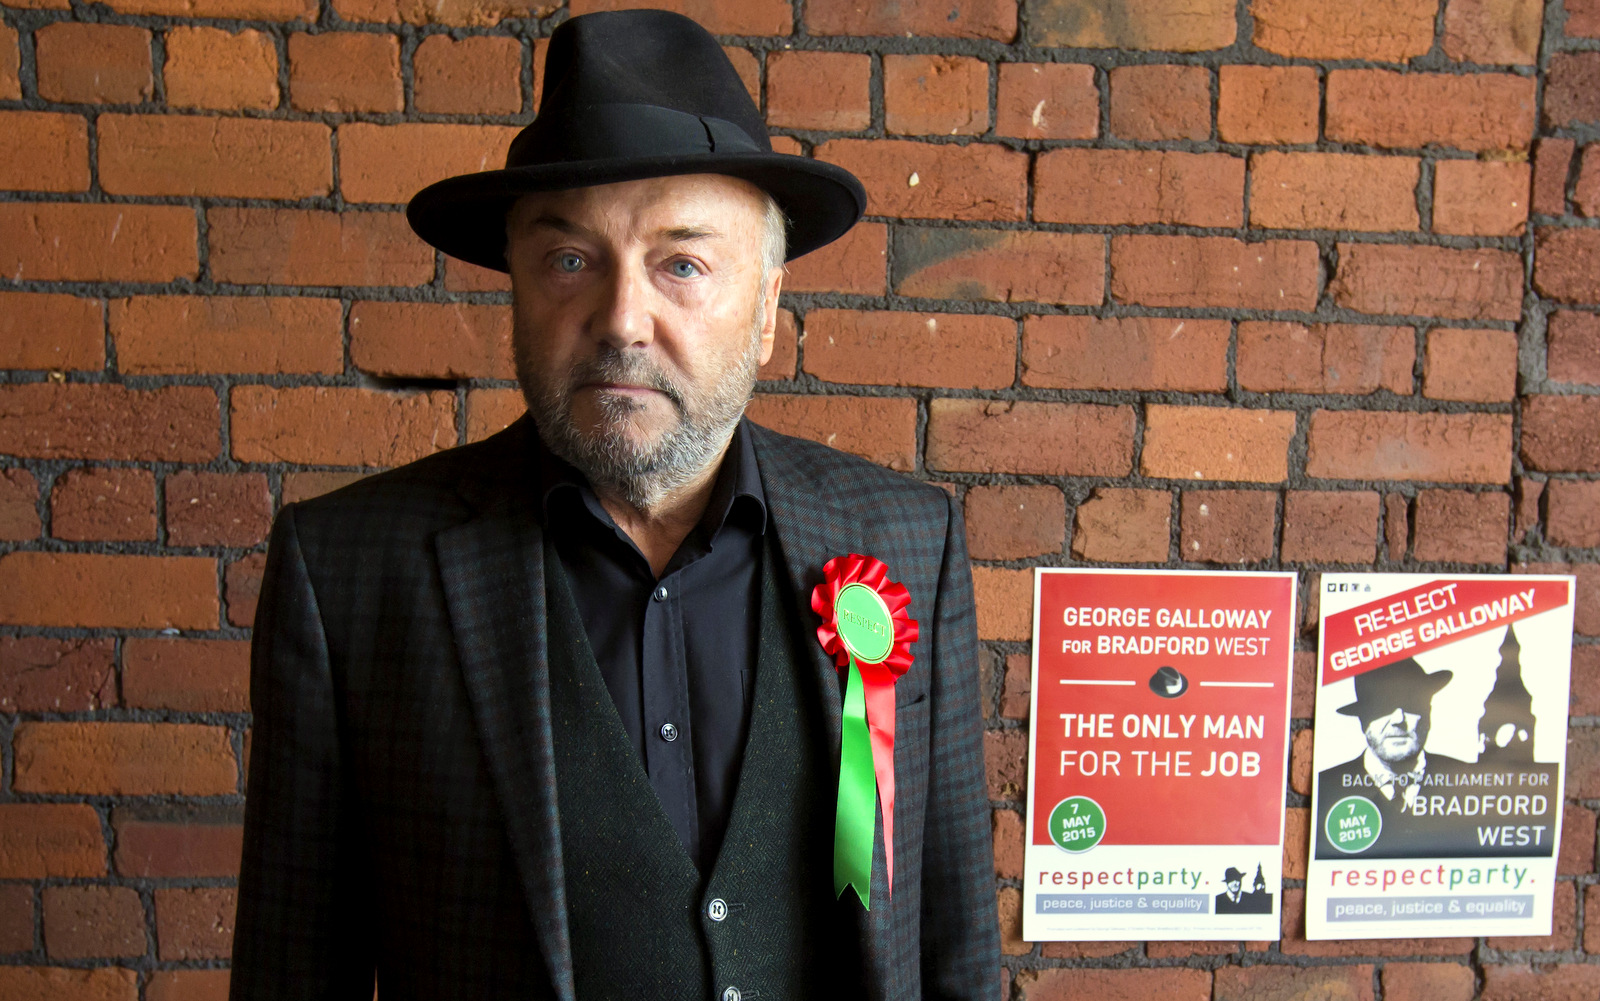 Respect Party Leader George Galloway poses for a picture after an interview at his offices in the constituency of Bradford West, in Bradford, England. (AP Photo/Jon Super)